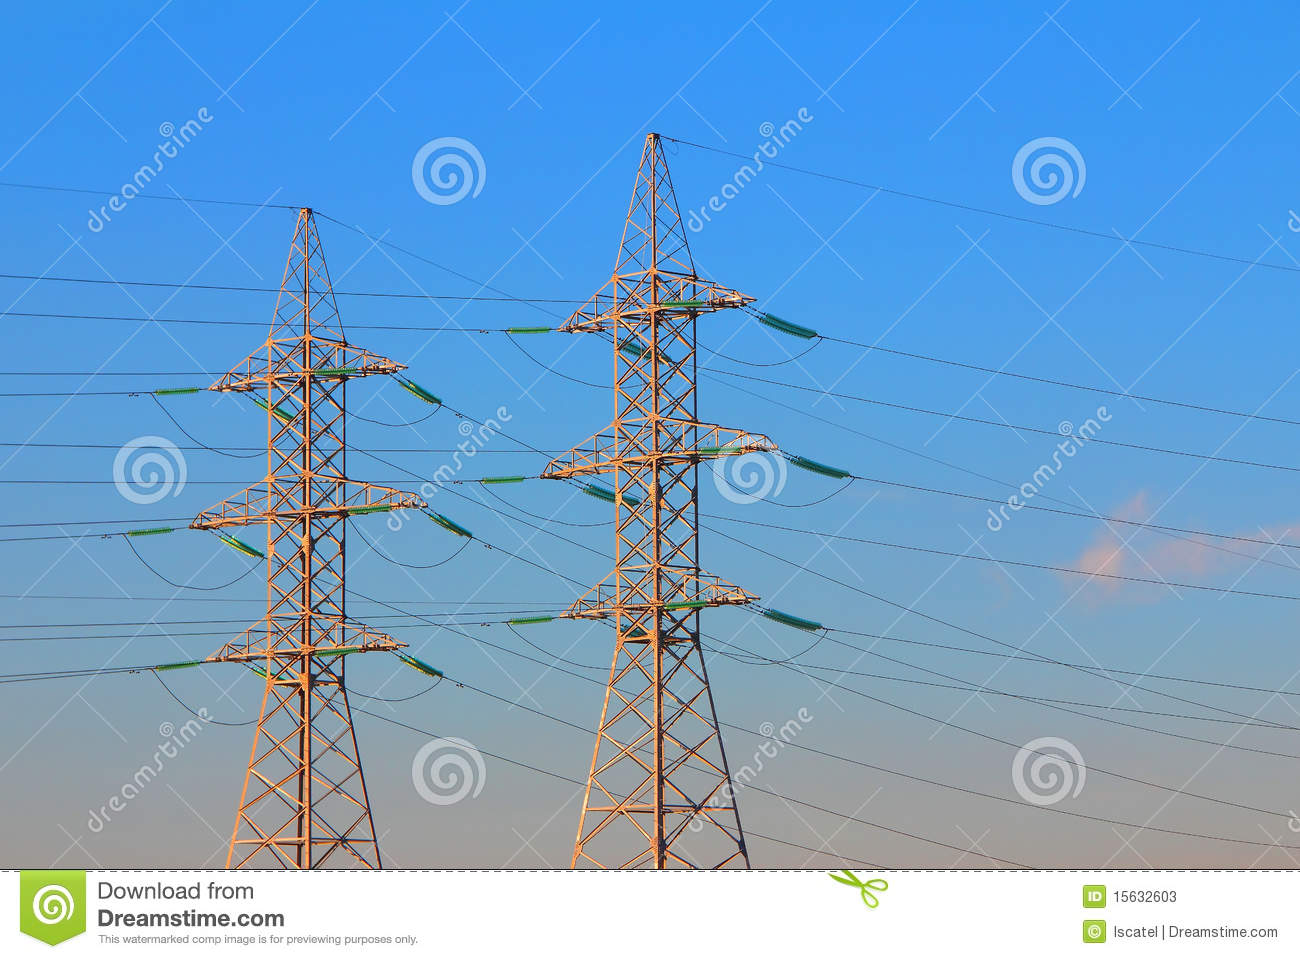 Electric Power Transmission : Electric power transmission towers stock image of